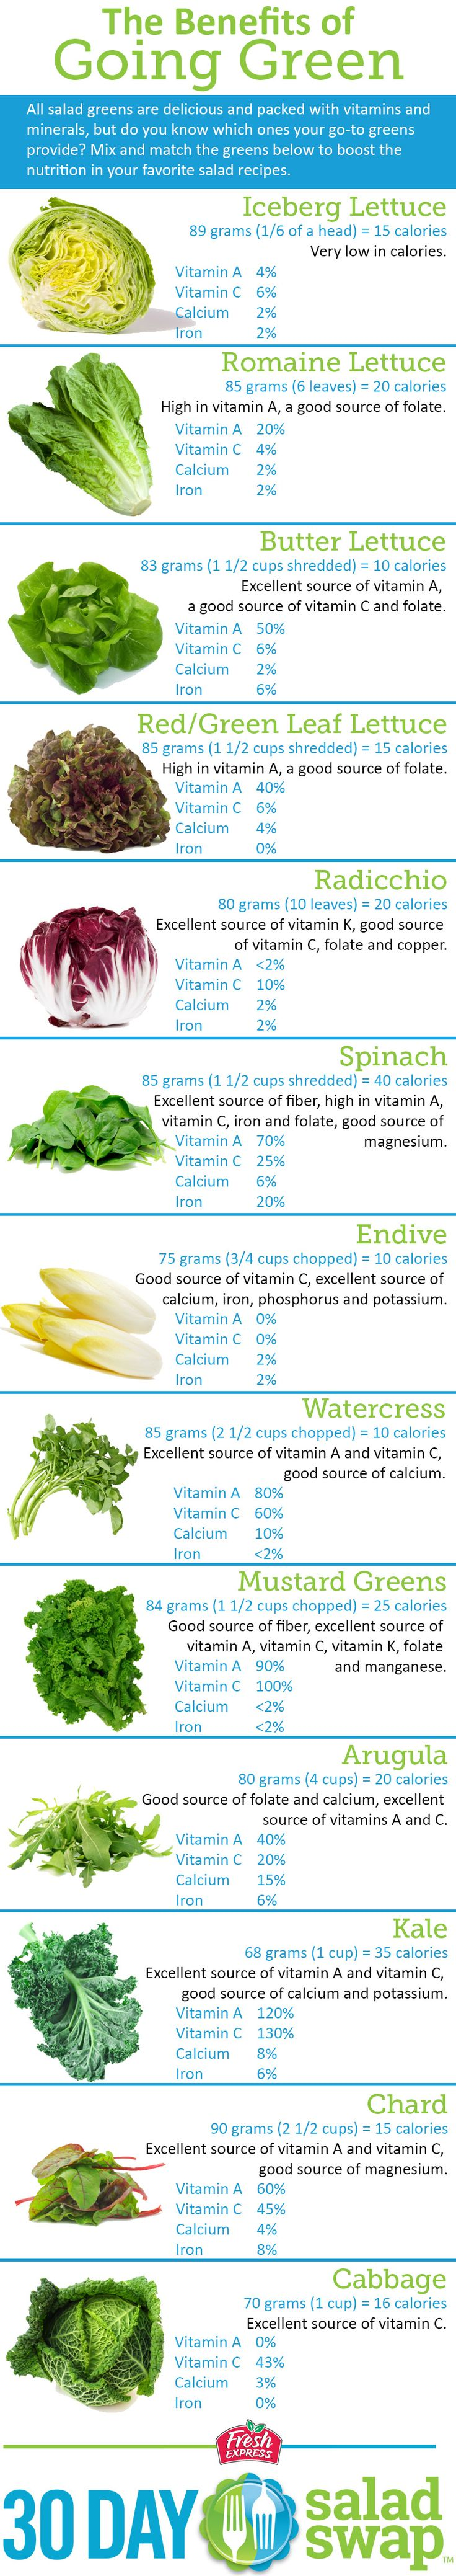 The Benefits of Going Green. Learn about the health benefits of various greens. #saladswap #FreshExpress